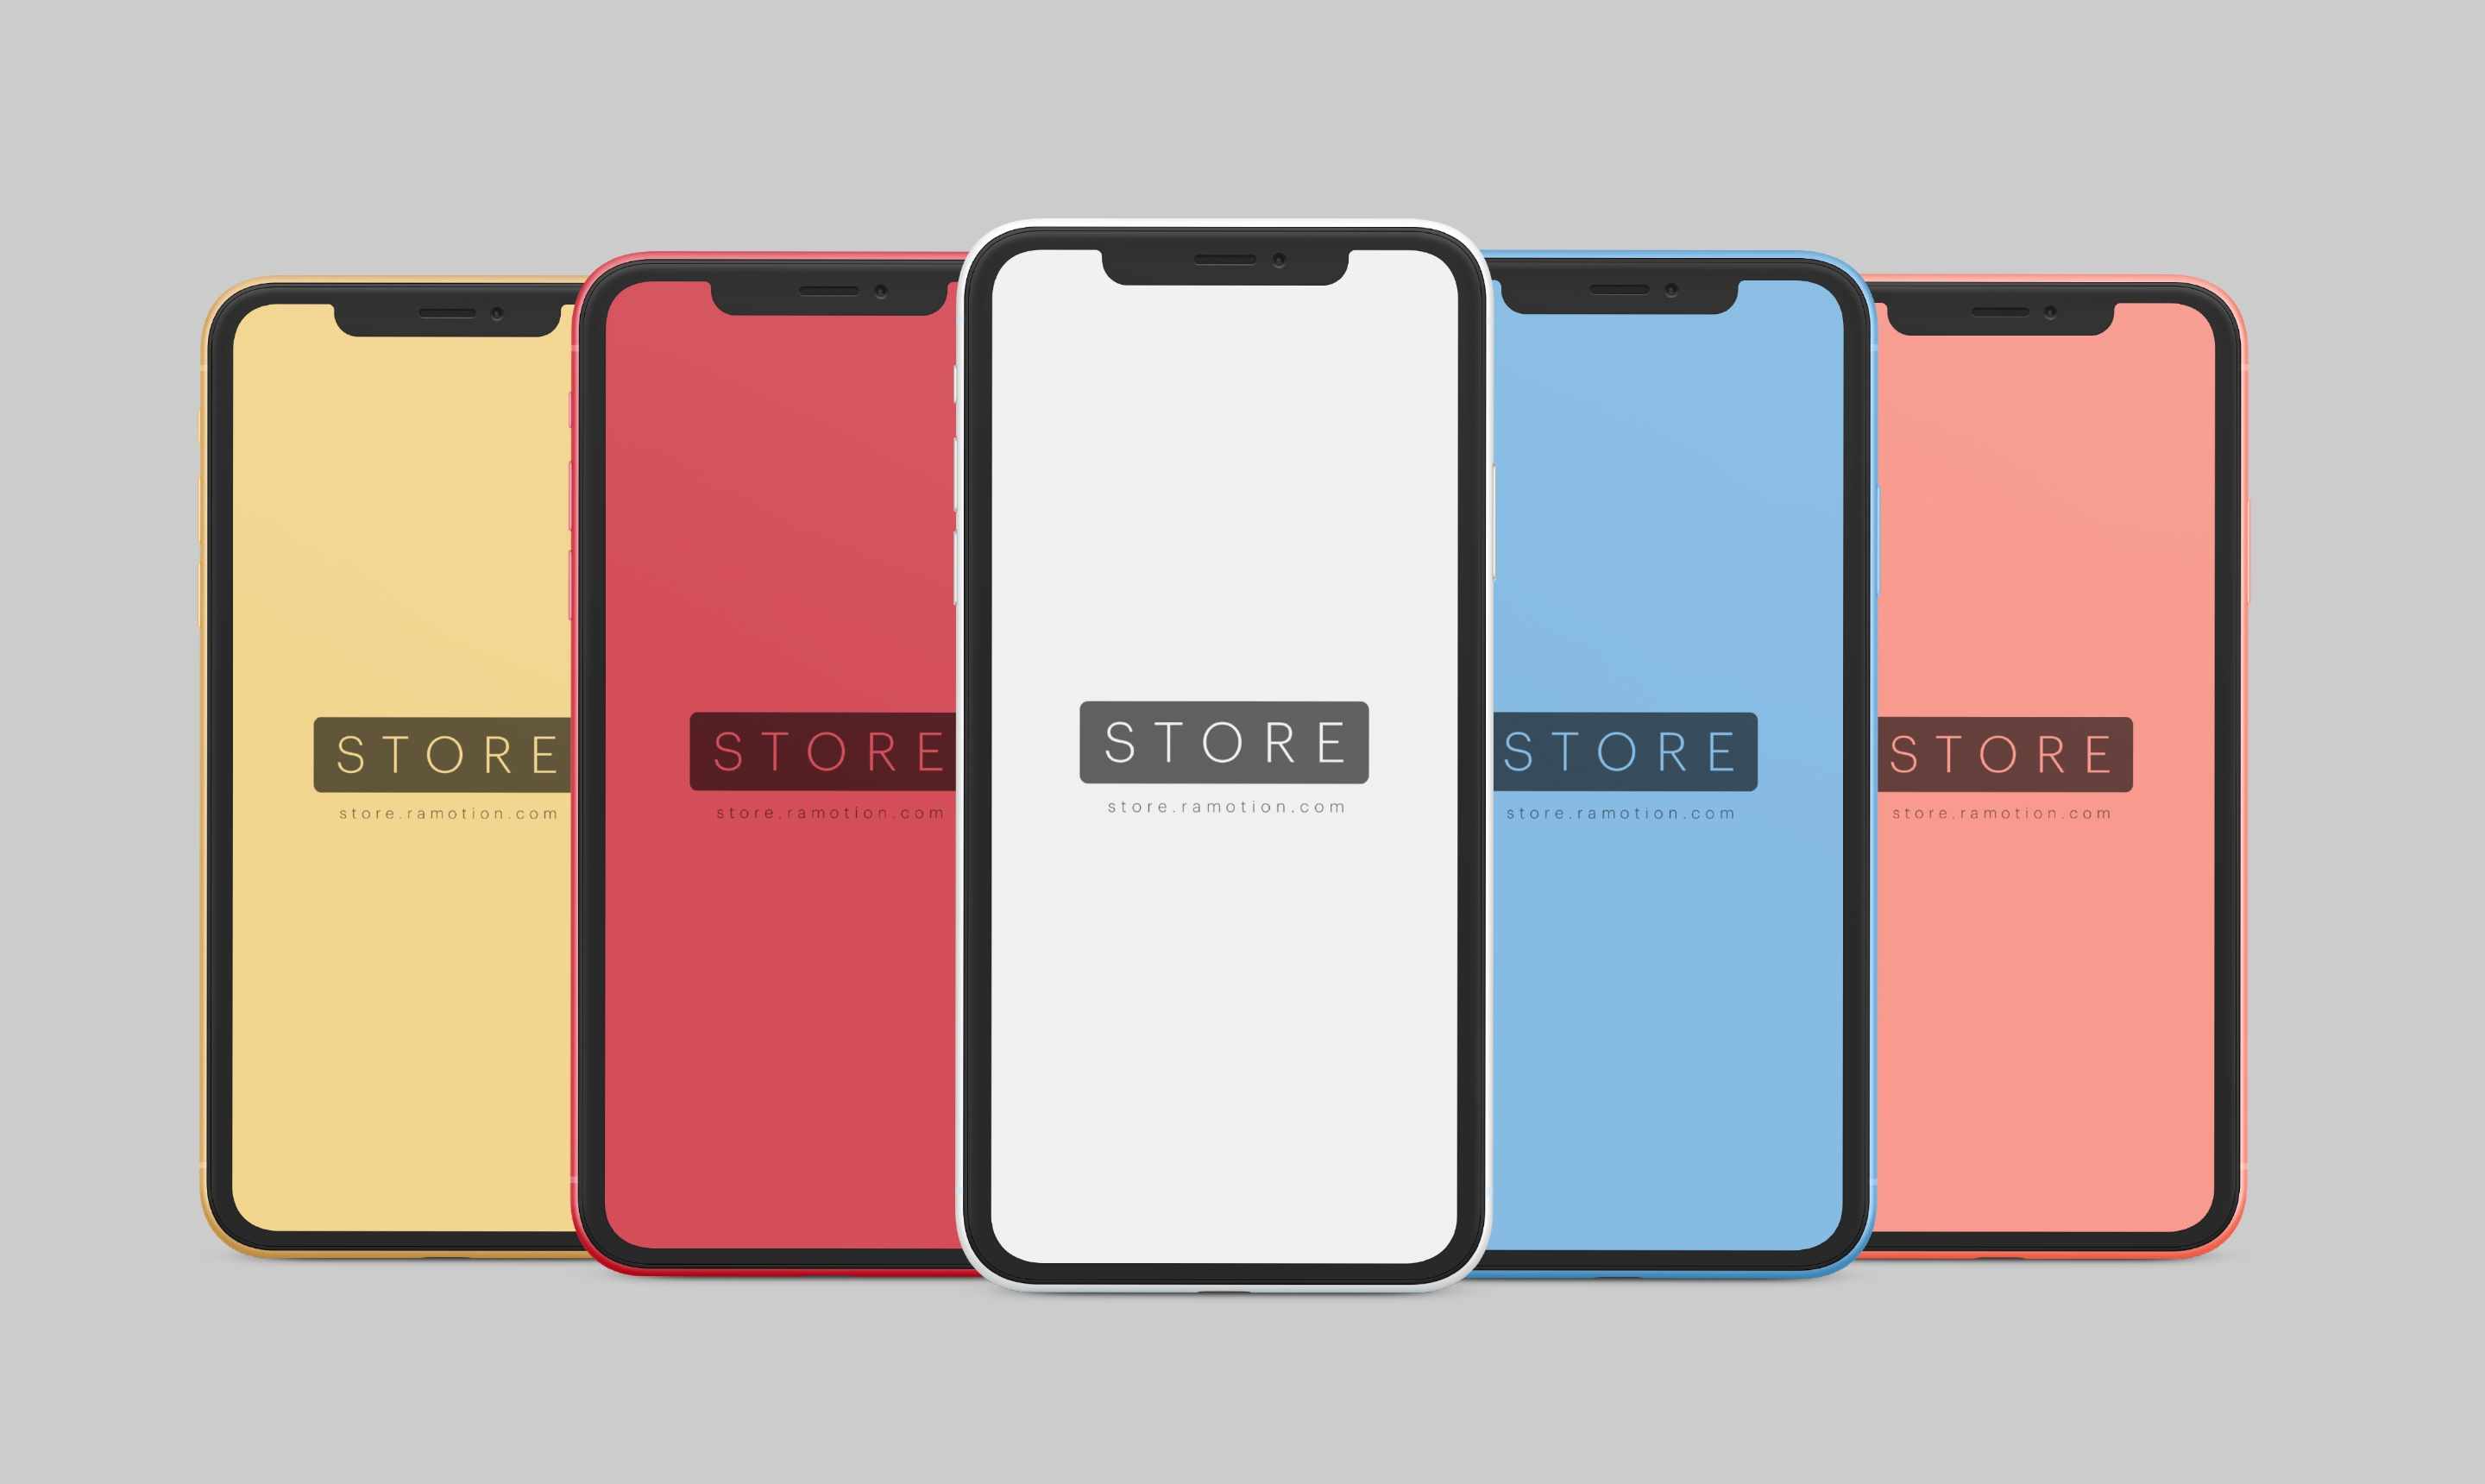 Iphone xr clay 4 colors frontal psd 2x